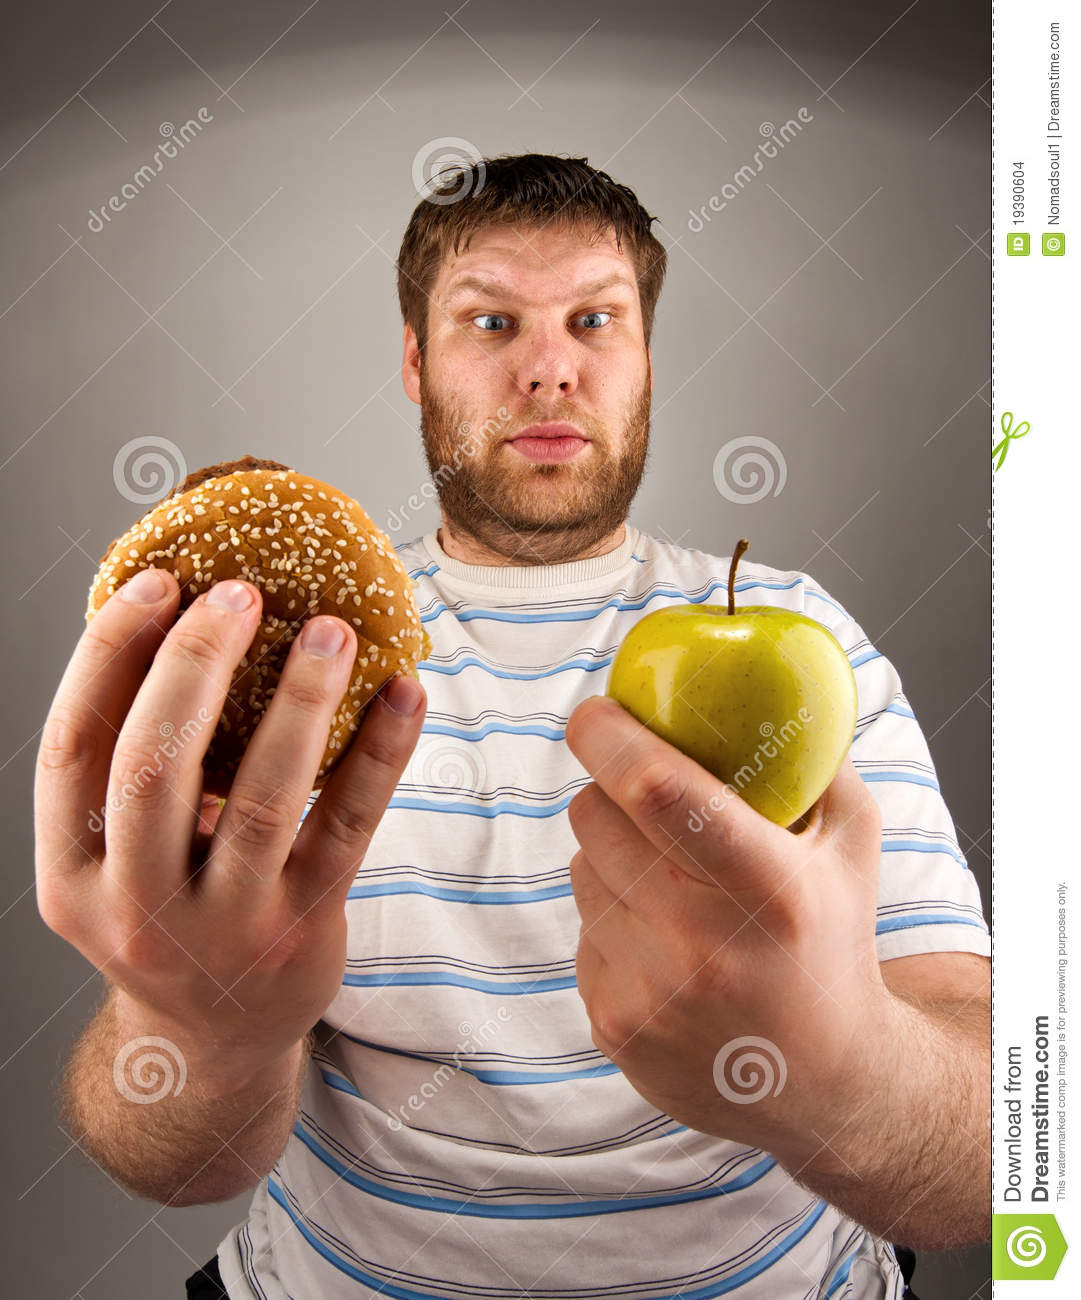 Fast food vs healthy food stock images image 19390604 for Lean cuisine vs fast food